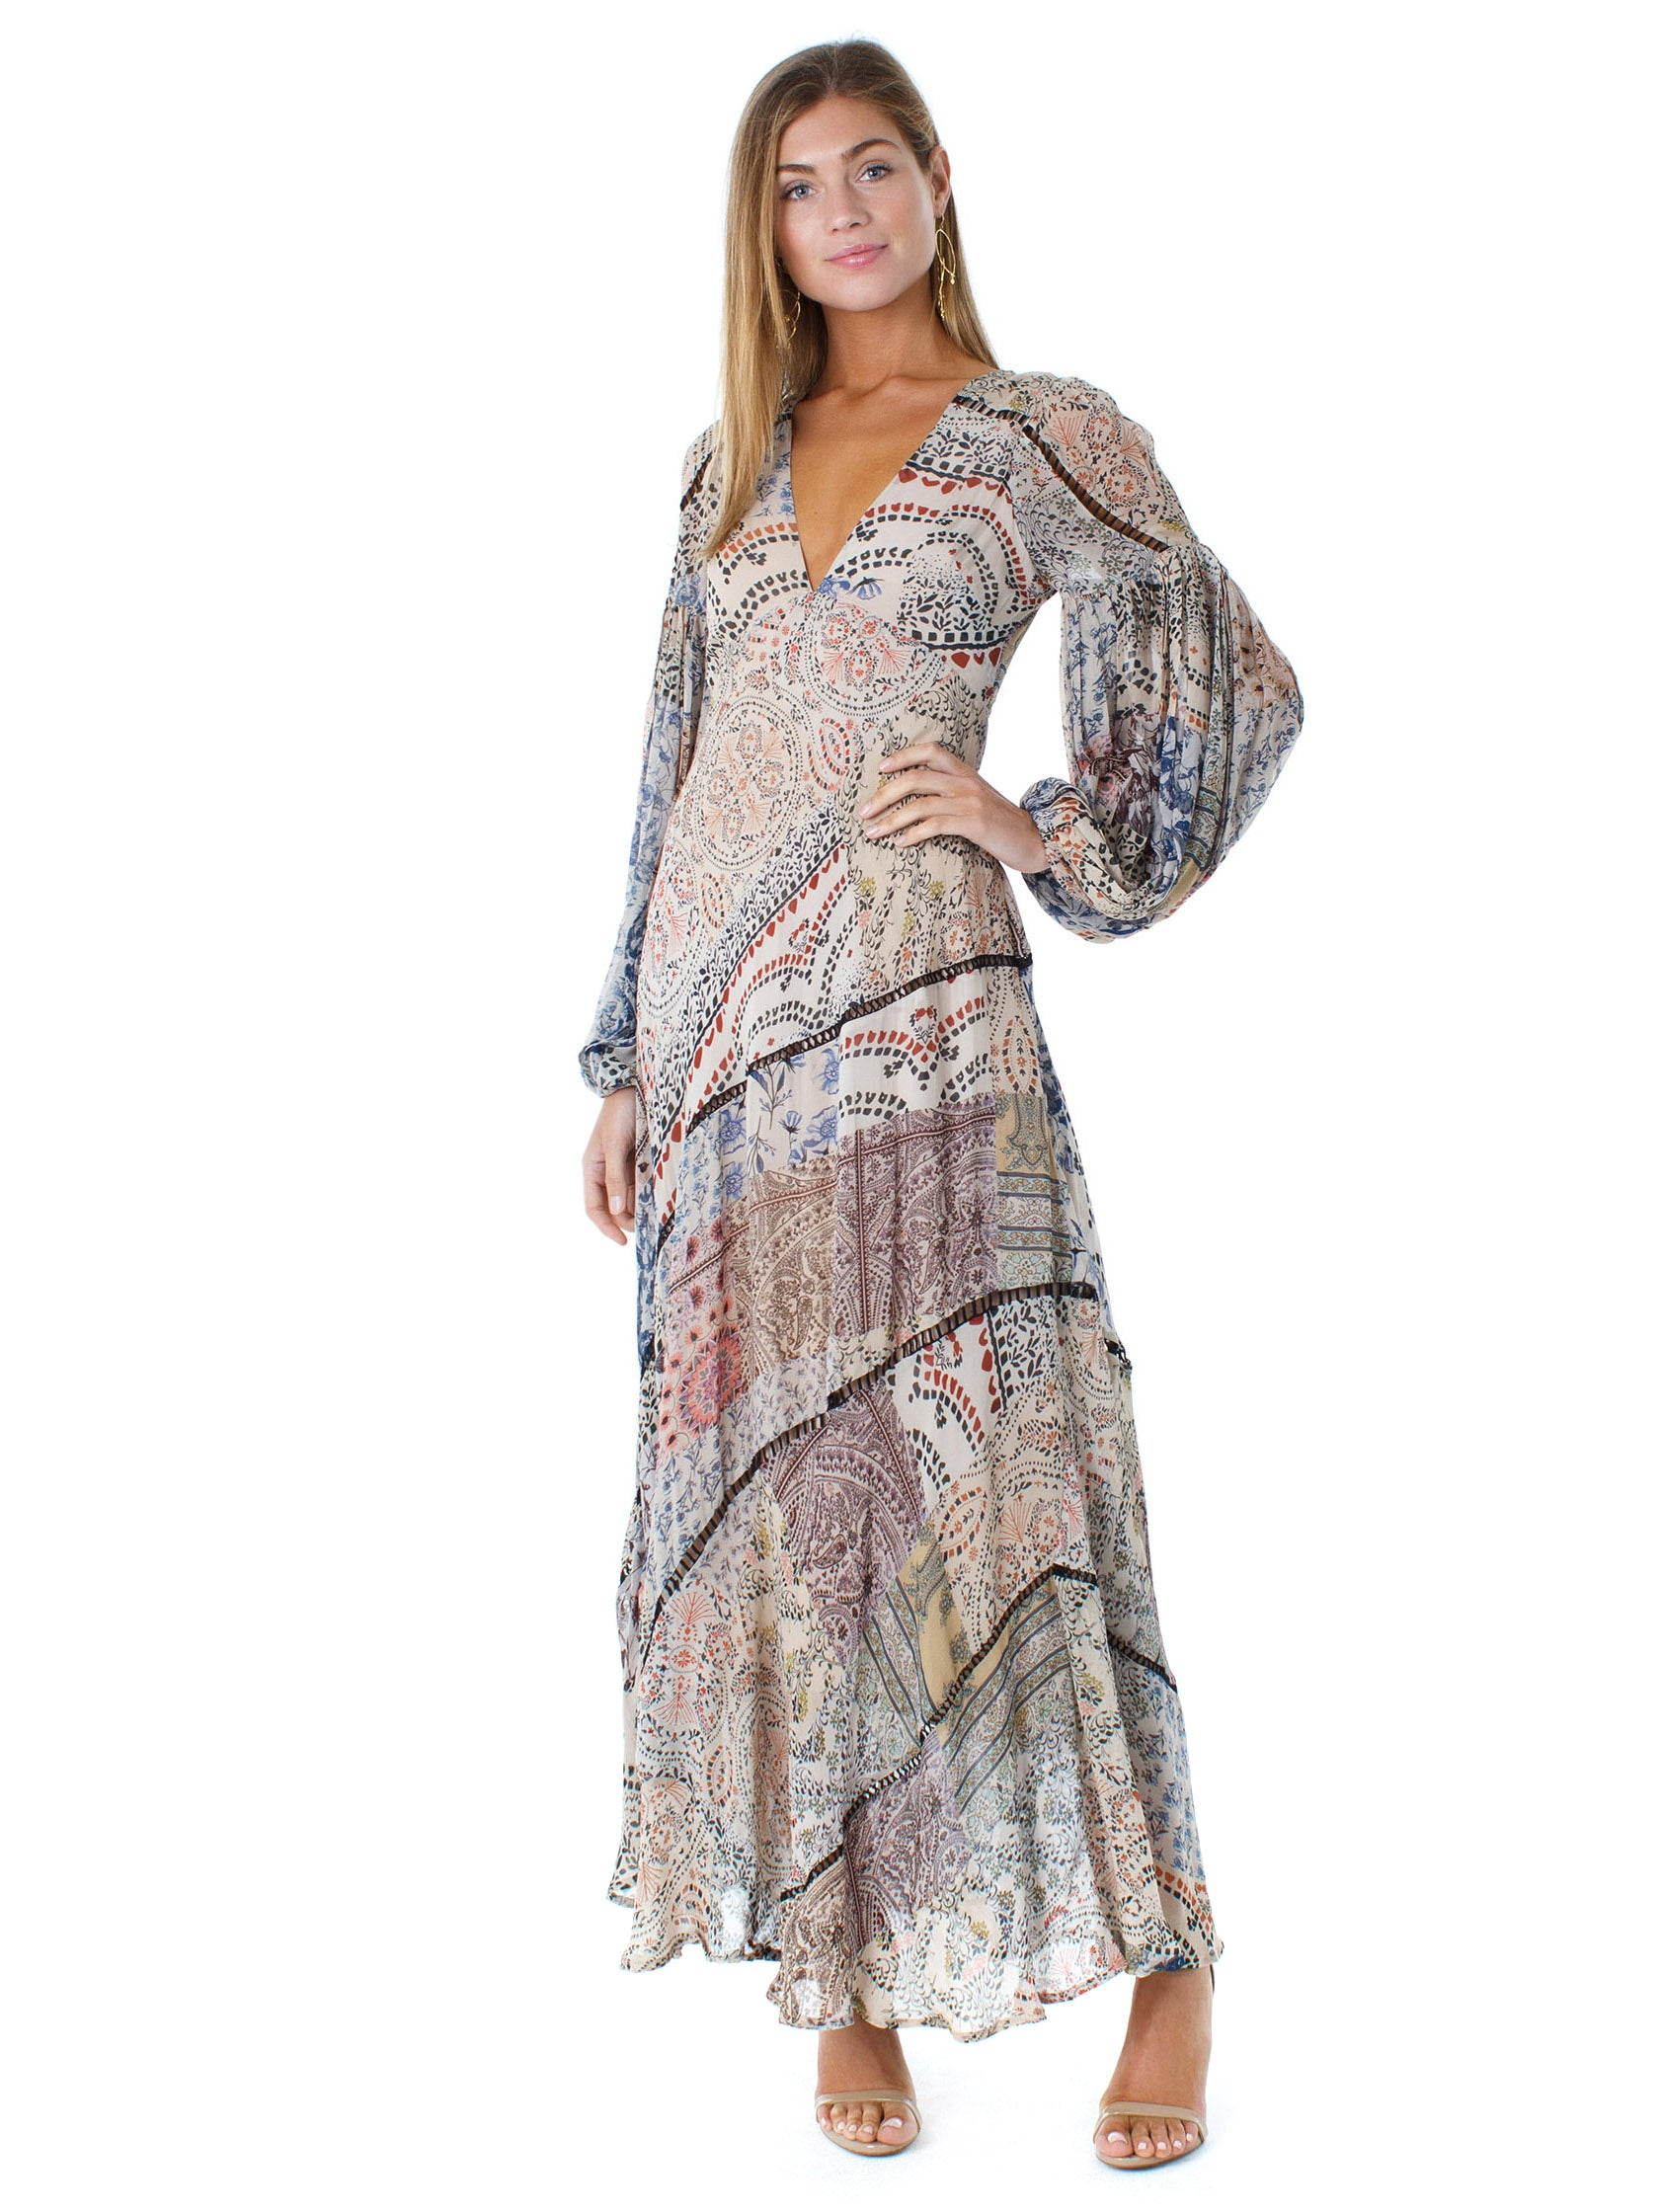 Girl outfit in a dress rental from Free People called Moroccan Dreams Maxi Dress